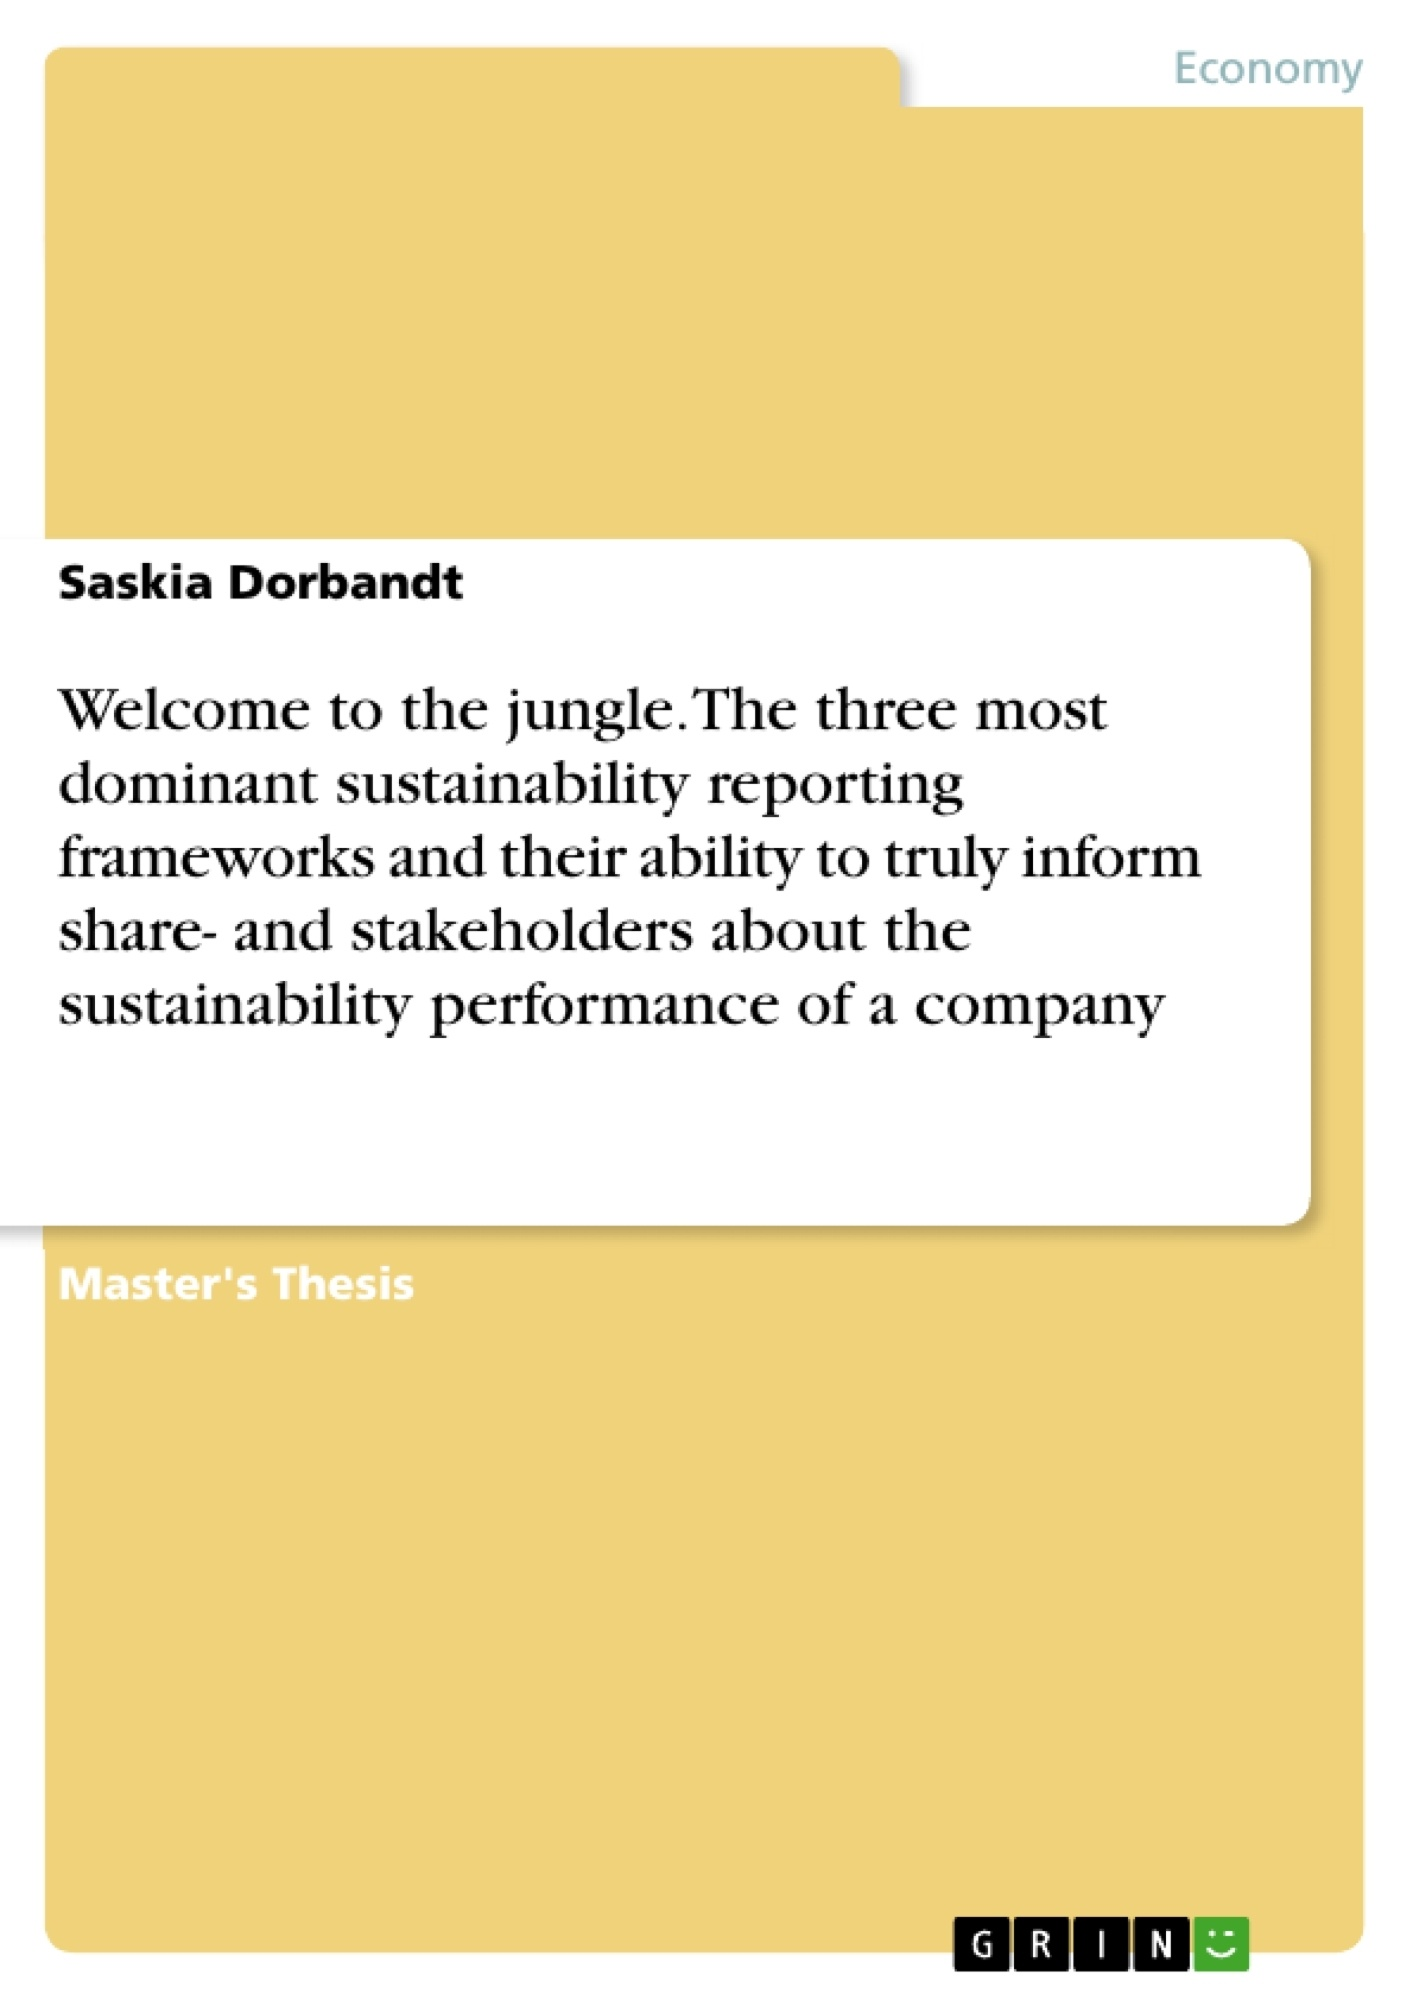 Title: Welcome to the jungle. The three most dominant sustainability reporting frameworks and their ability to truly inform share- and stakeholders about the sustainability performance of a company